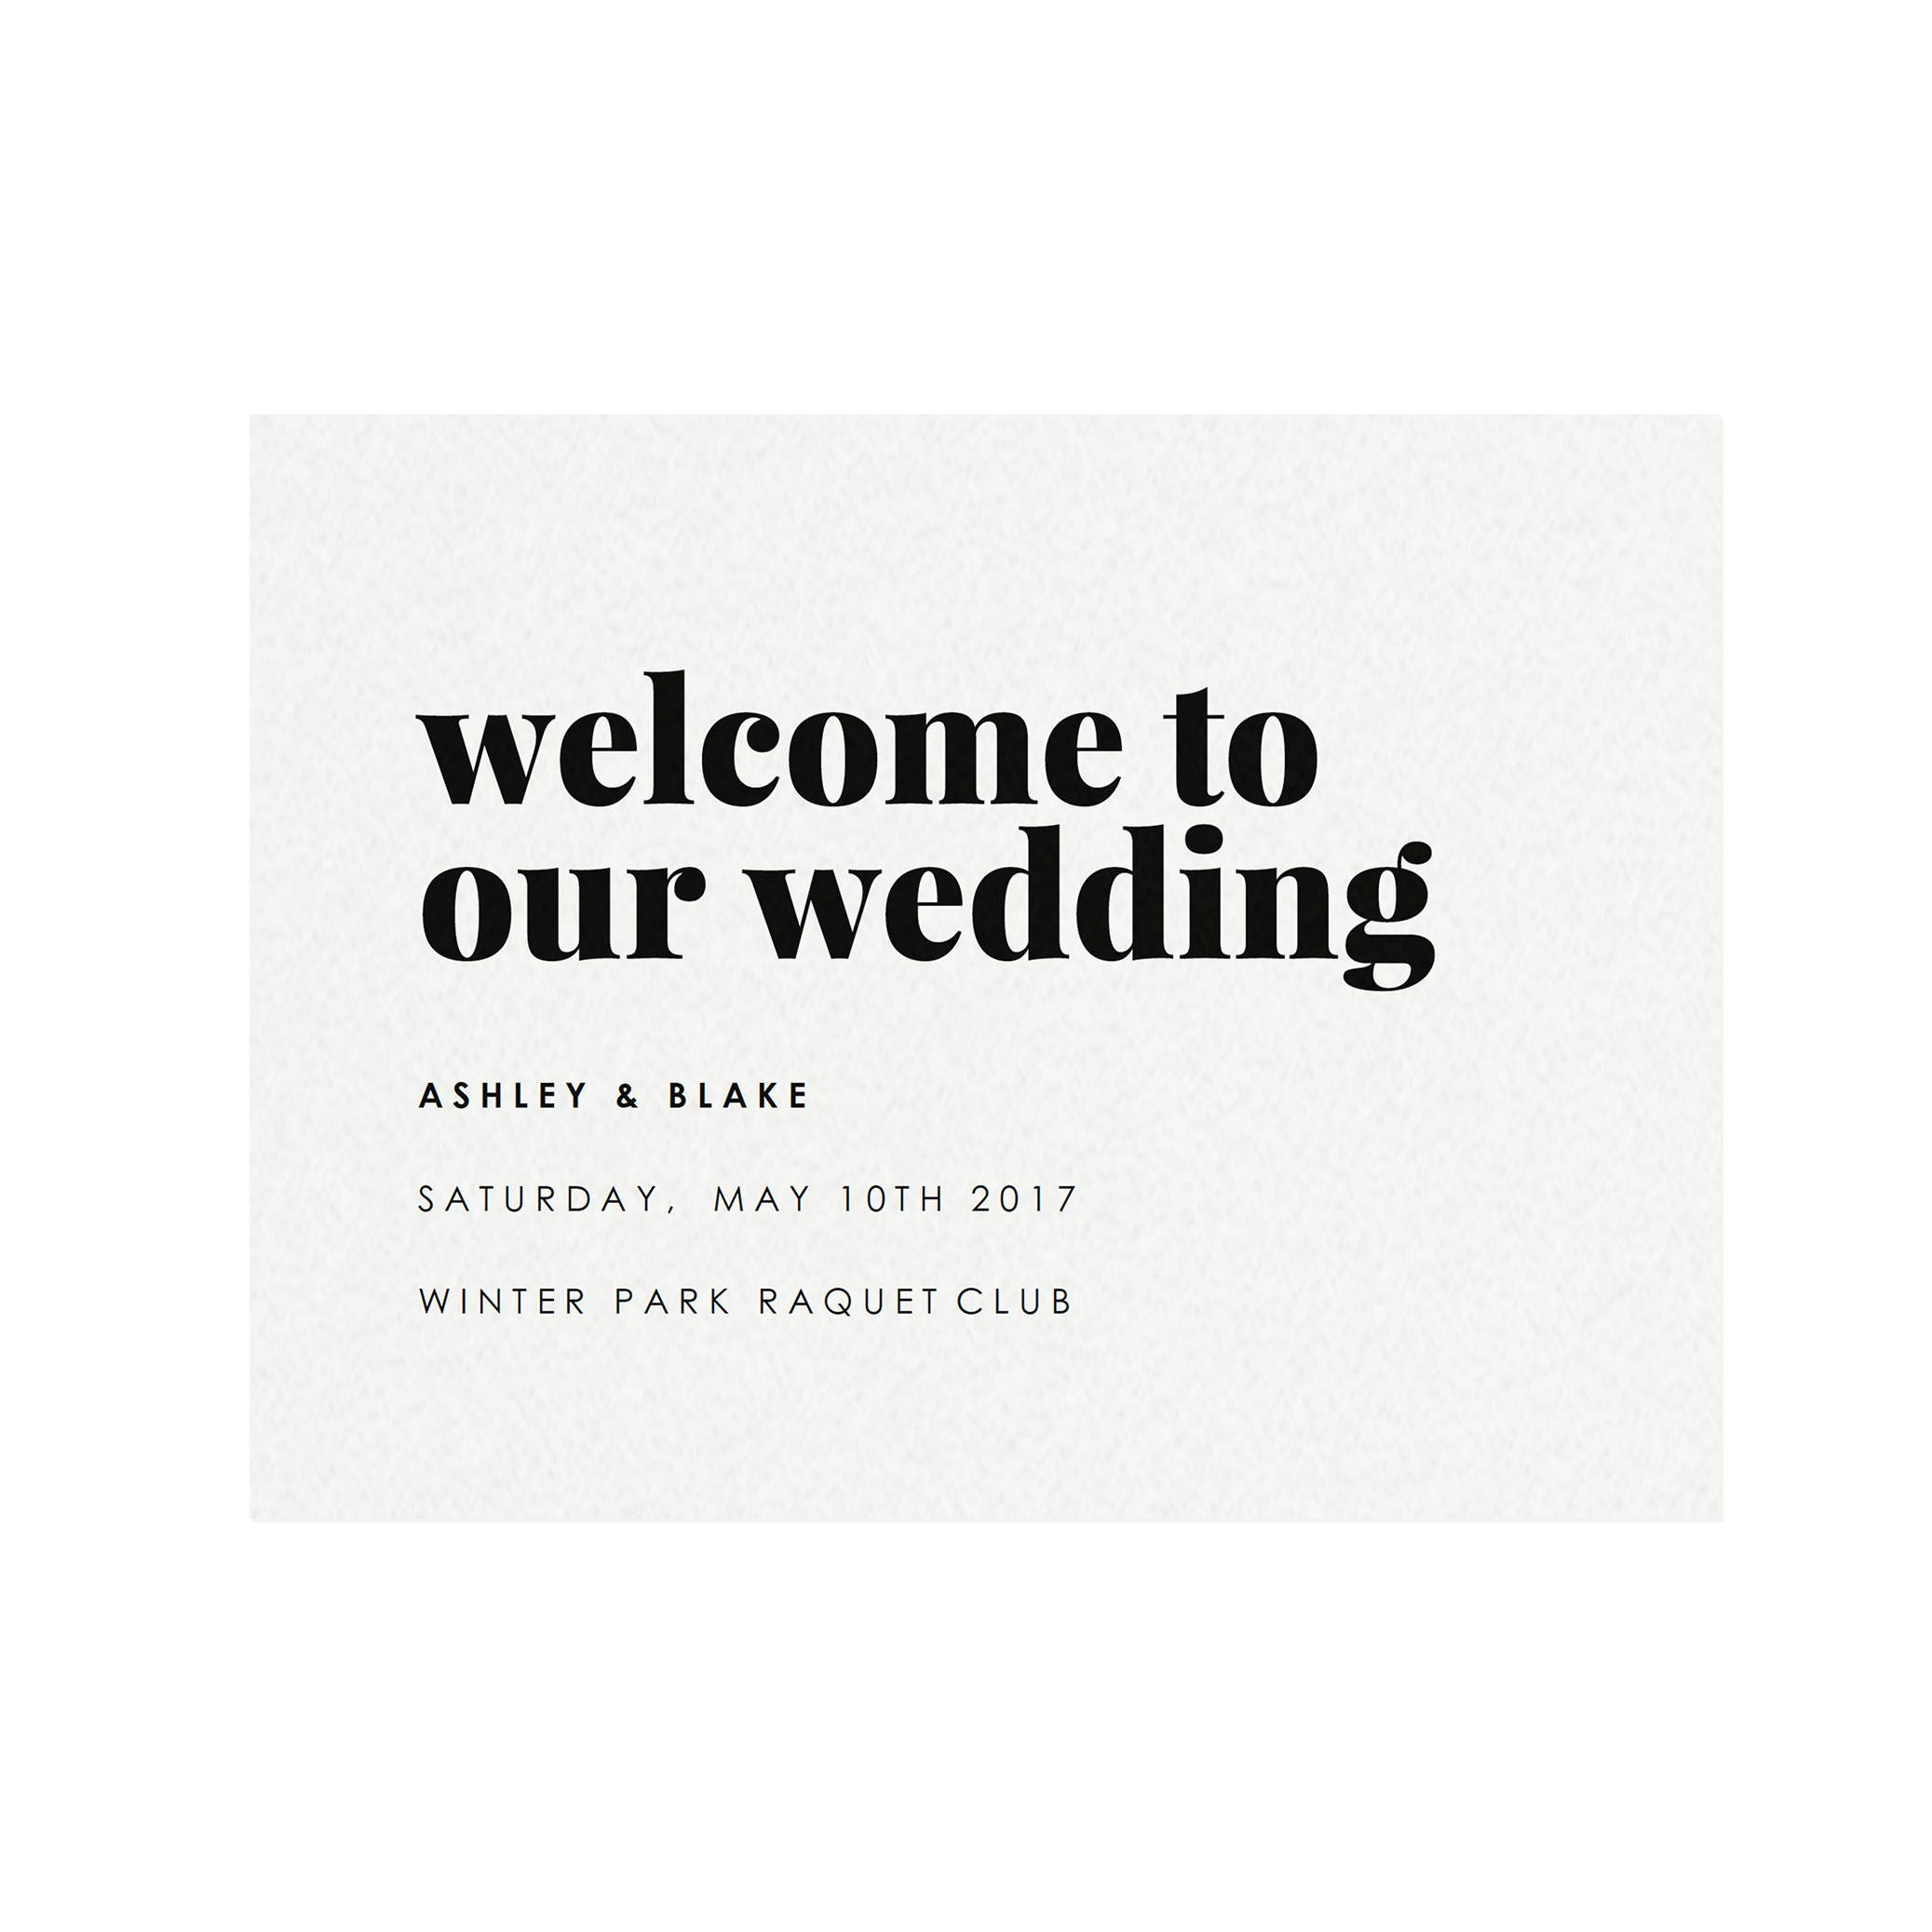 Fairfax: 18x24 Welcome Sign Template, Event Welcome, Modern Printable  Wedding Sign, Minimalist Reception, PDF Instant Download